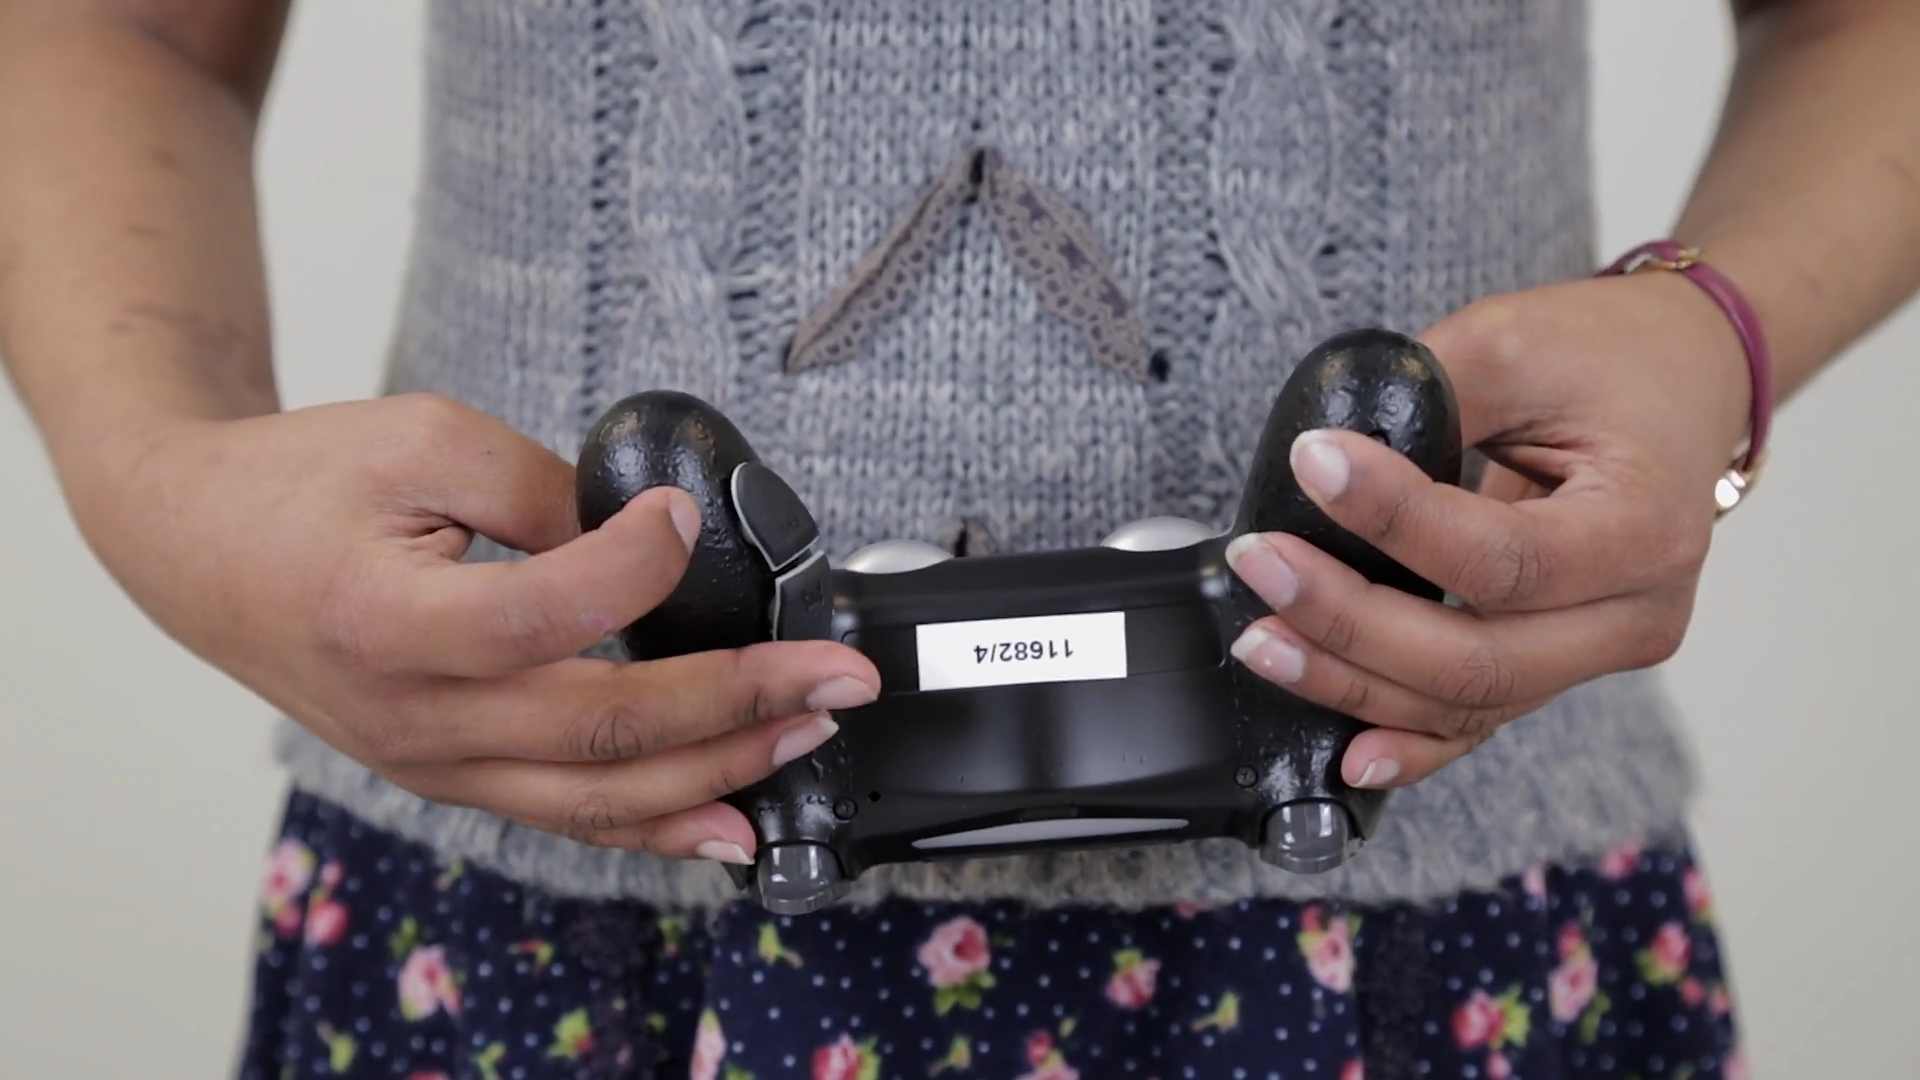 An Evil Lefty controller with the paddles being shown.